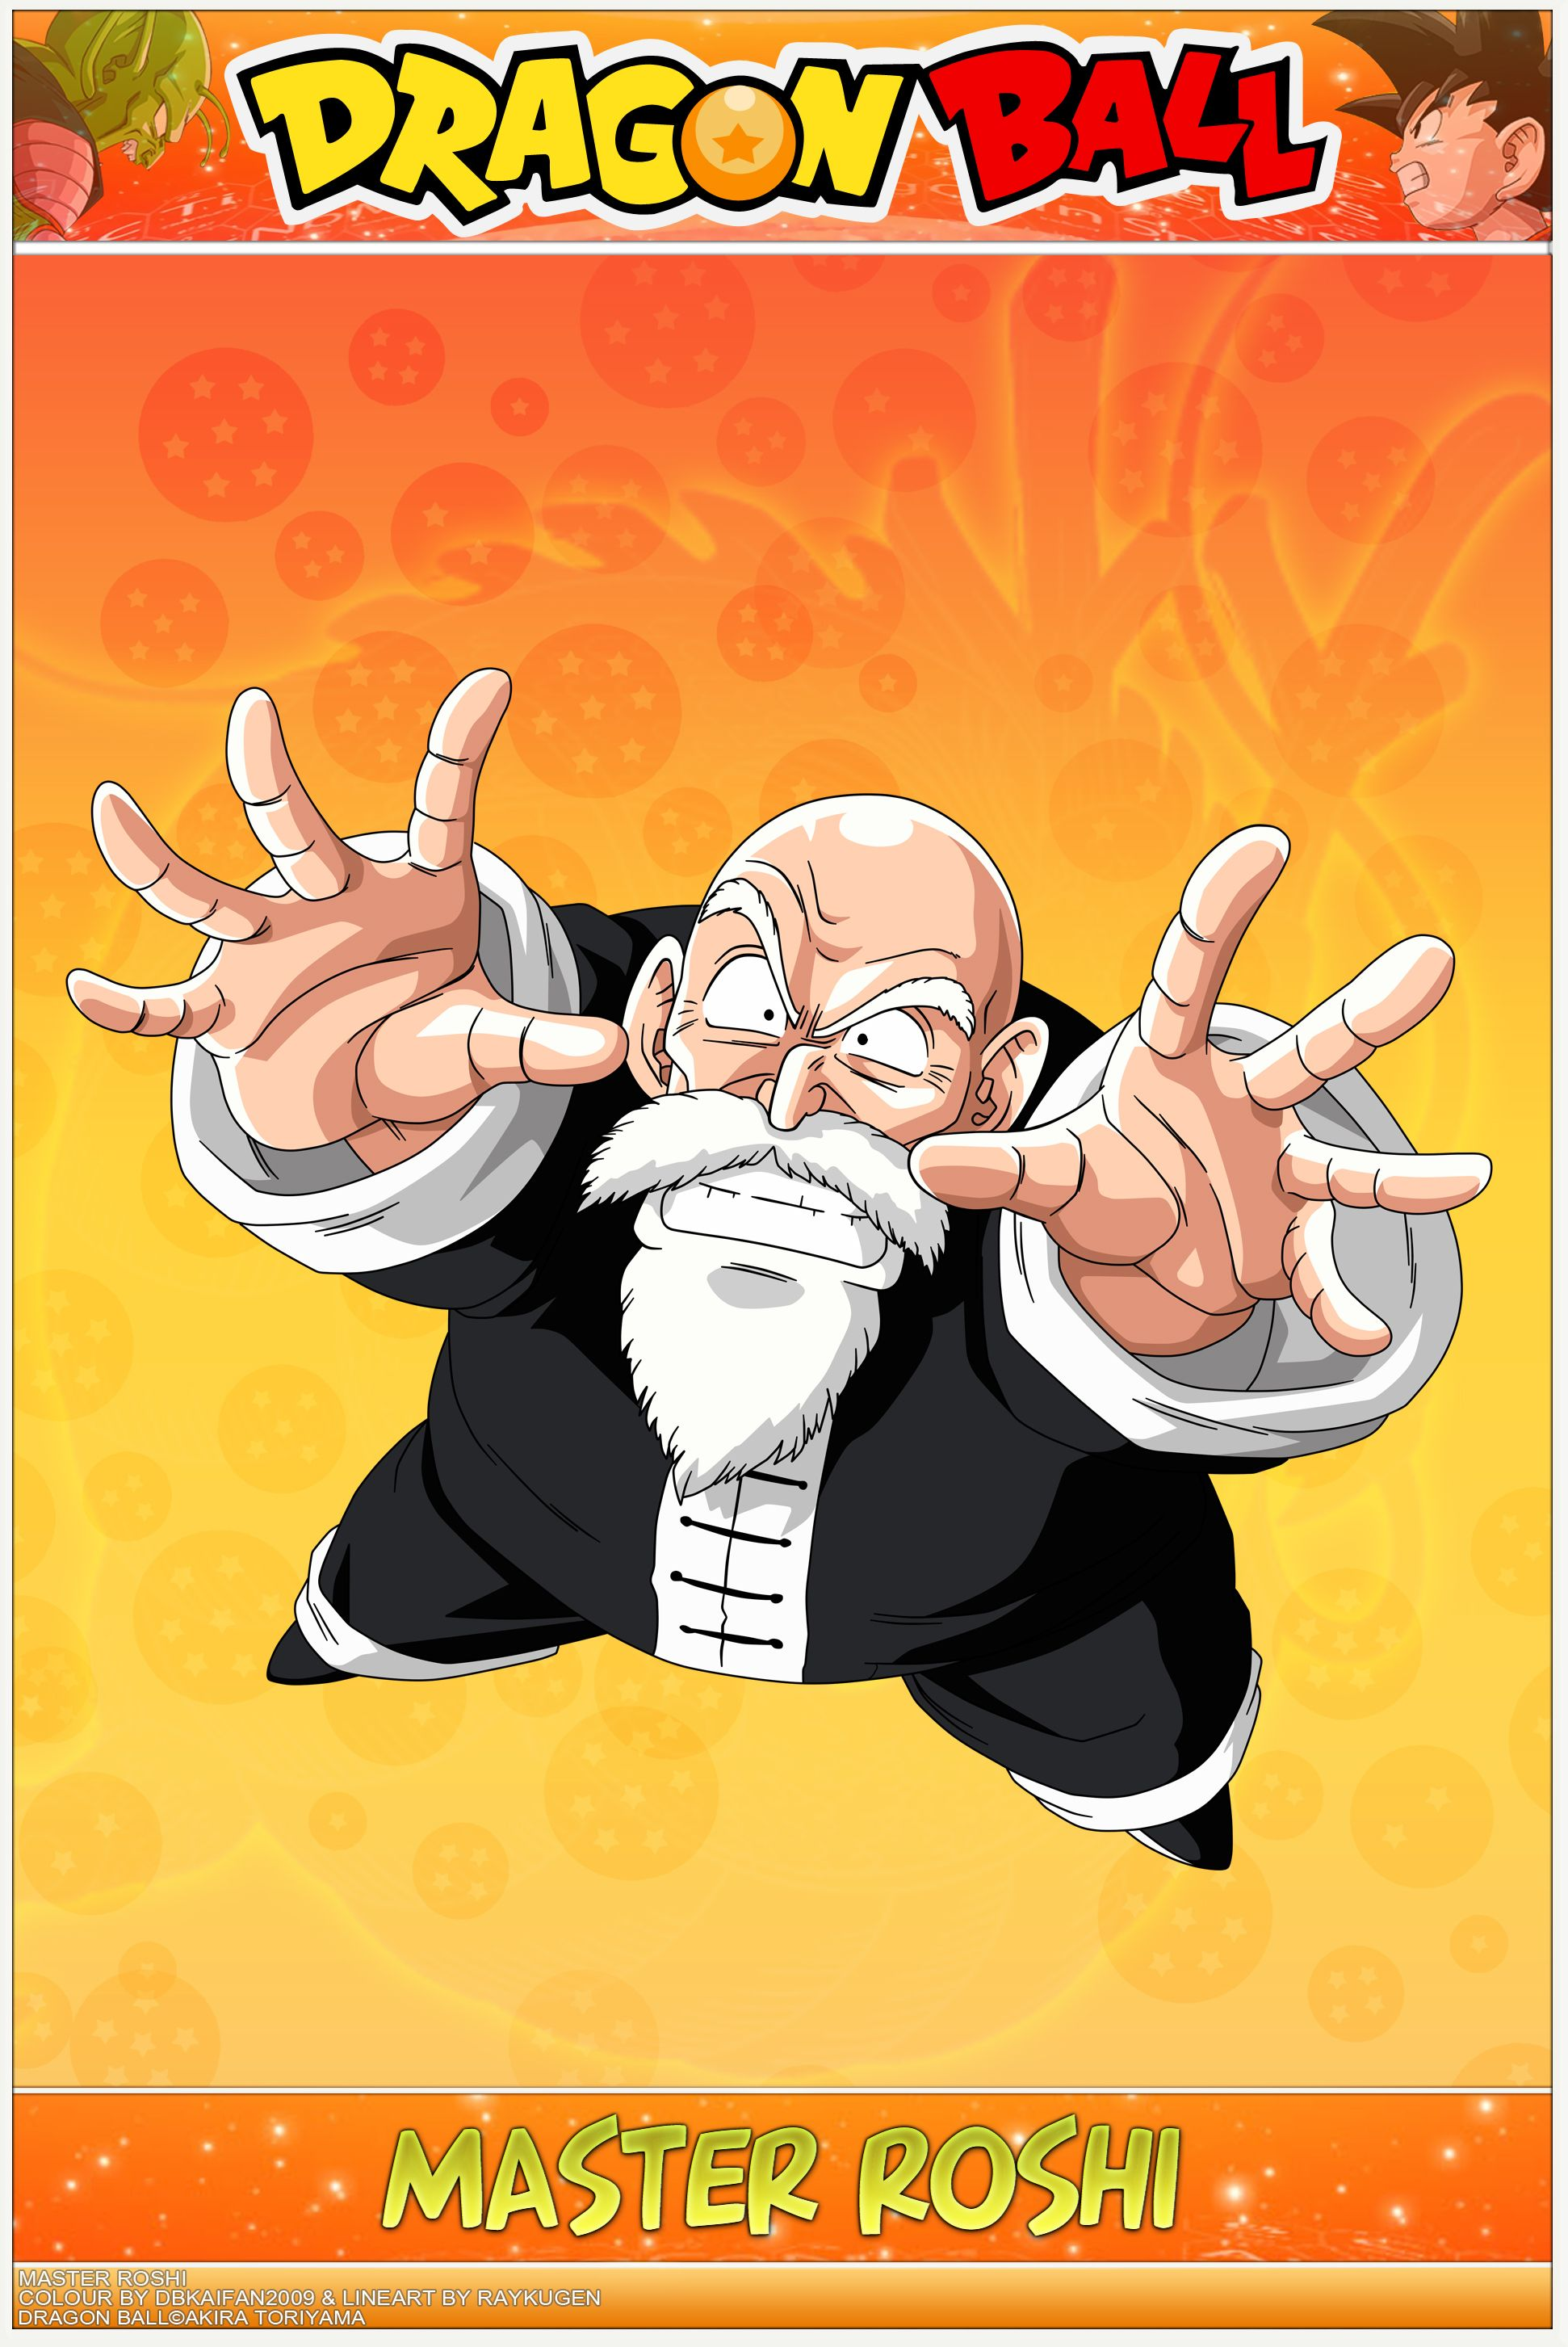 Dragon Ball - Master Roshi - Mafuba by DBCProject.deviantart.com